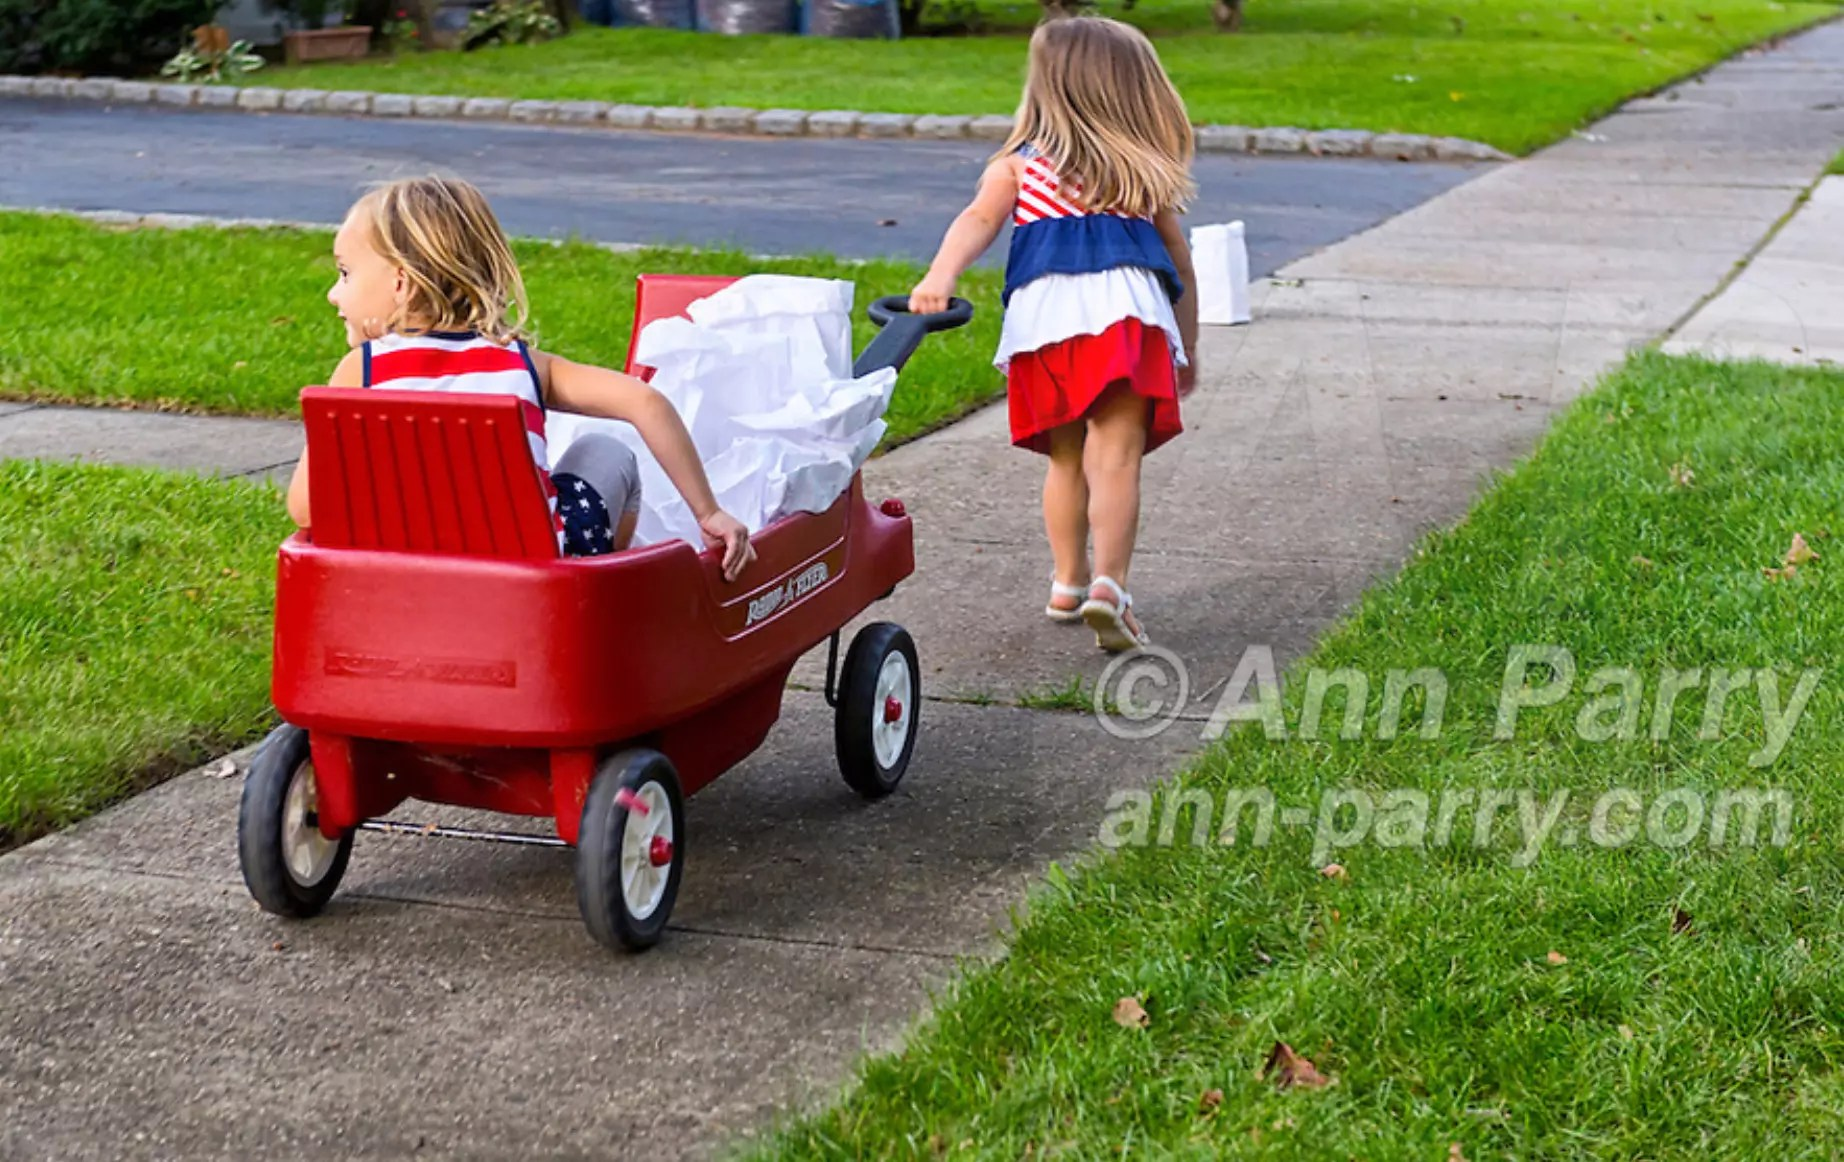 Merrick, NY, USA. Sept. 11, 2012. Sept. 11, 2012. KATE O., 2, and LYLA W., 3, both from Merrick, are helping to distribute 500 Luminary Bags among the 215 Wenshaw Park homes on the 11th Anniversary of 9/11, by Wenshaw Park Civic Association (WPCA), Long Island, with over $500 already raised for Twin Towers Orphan Fund.